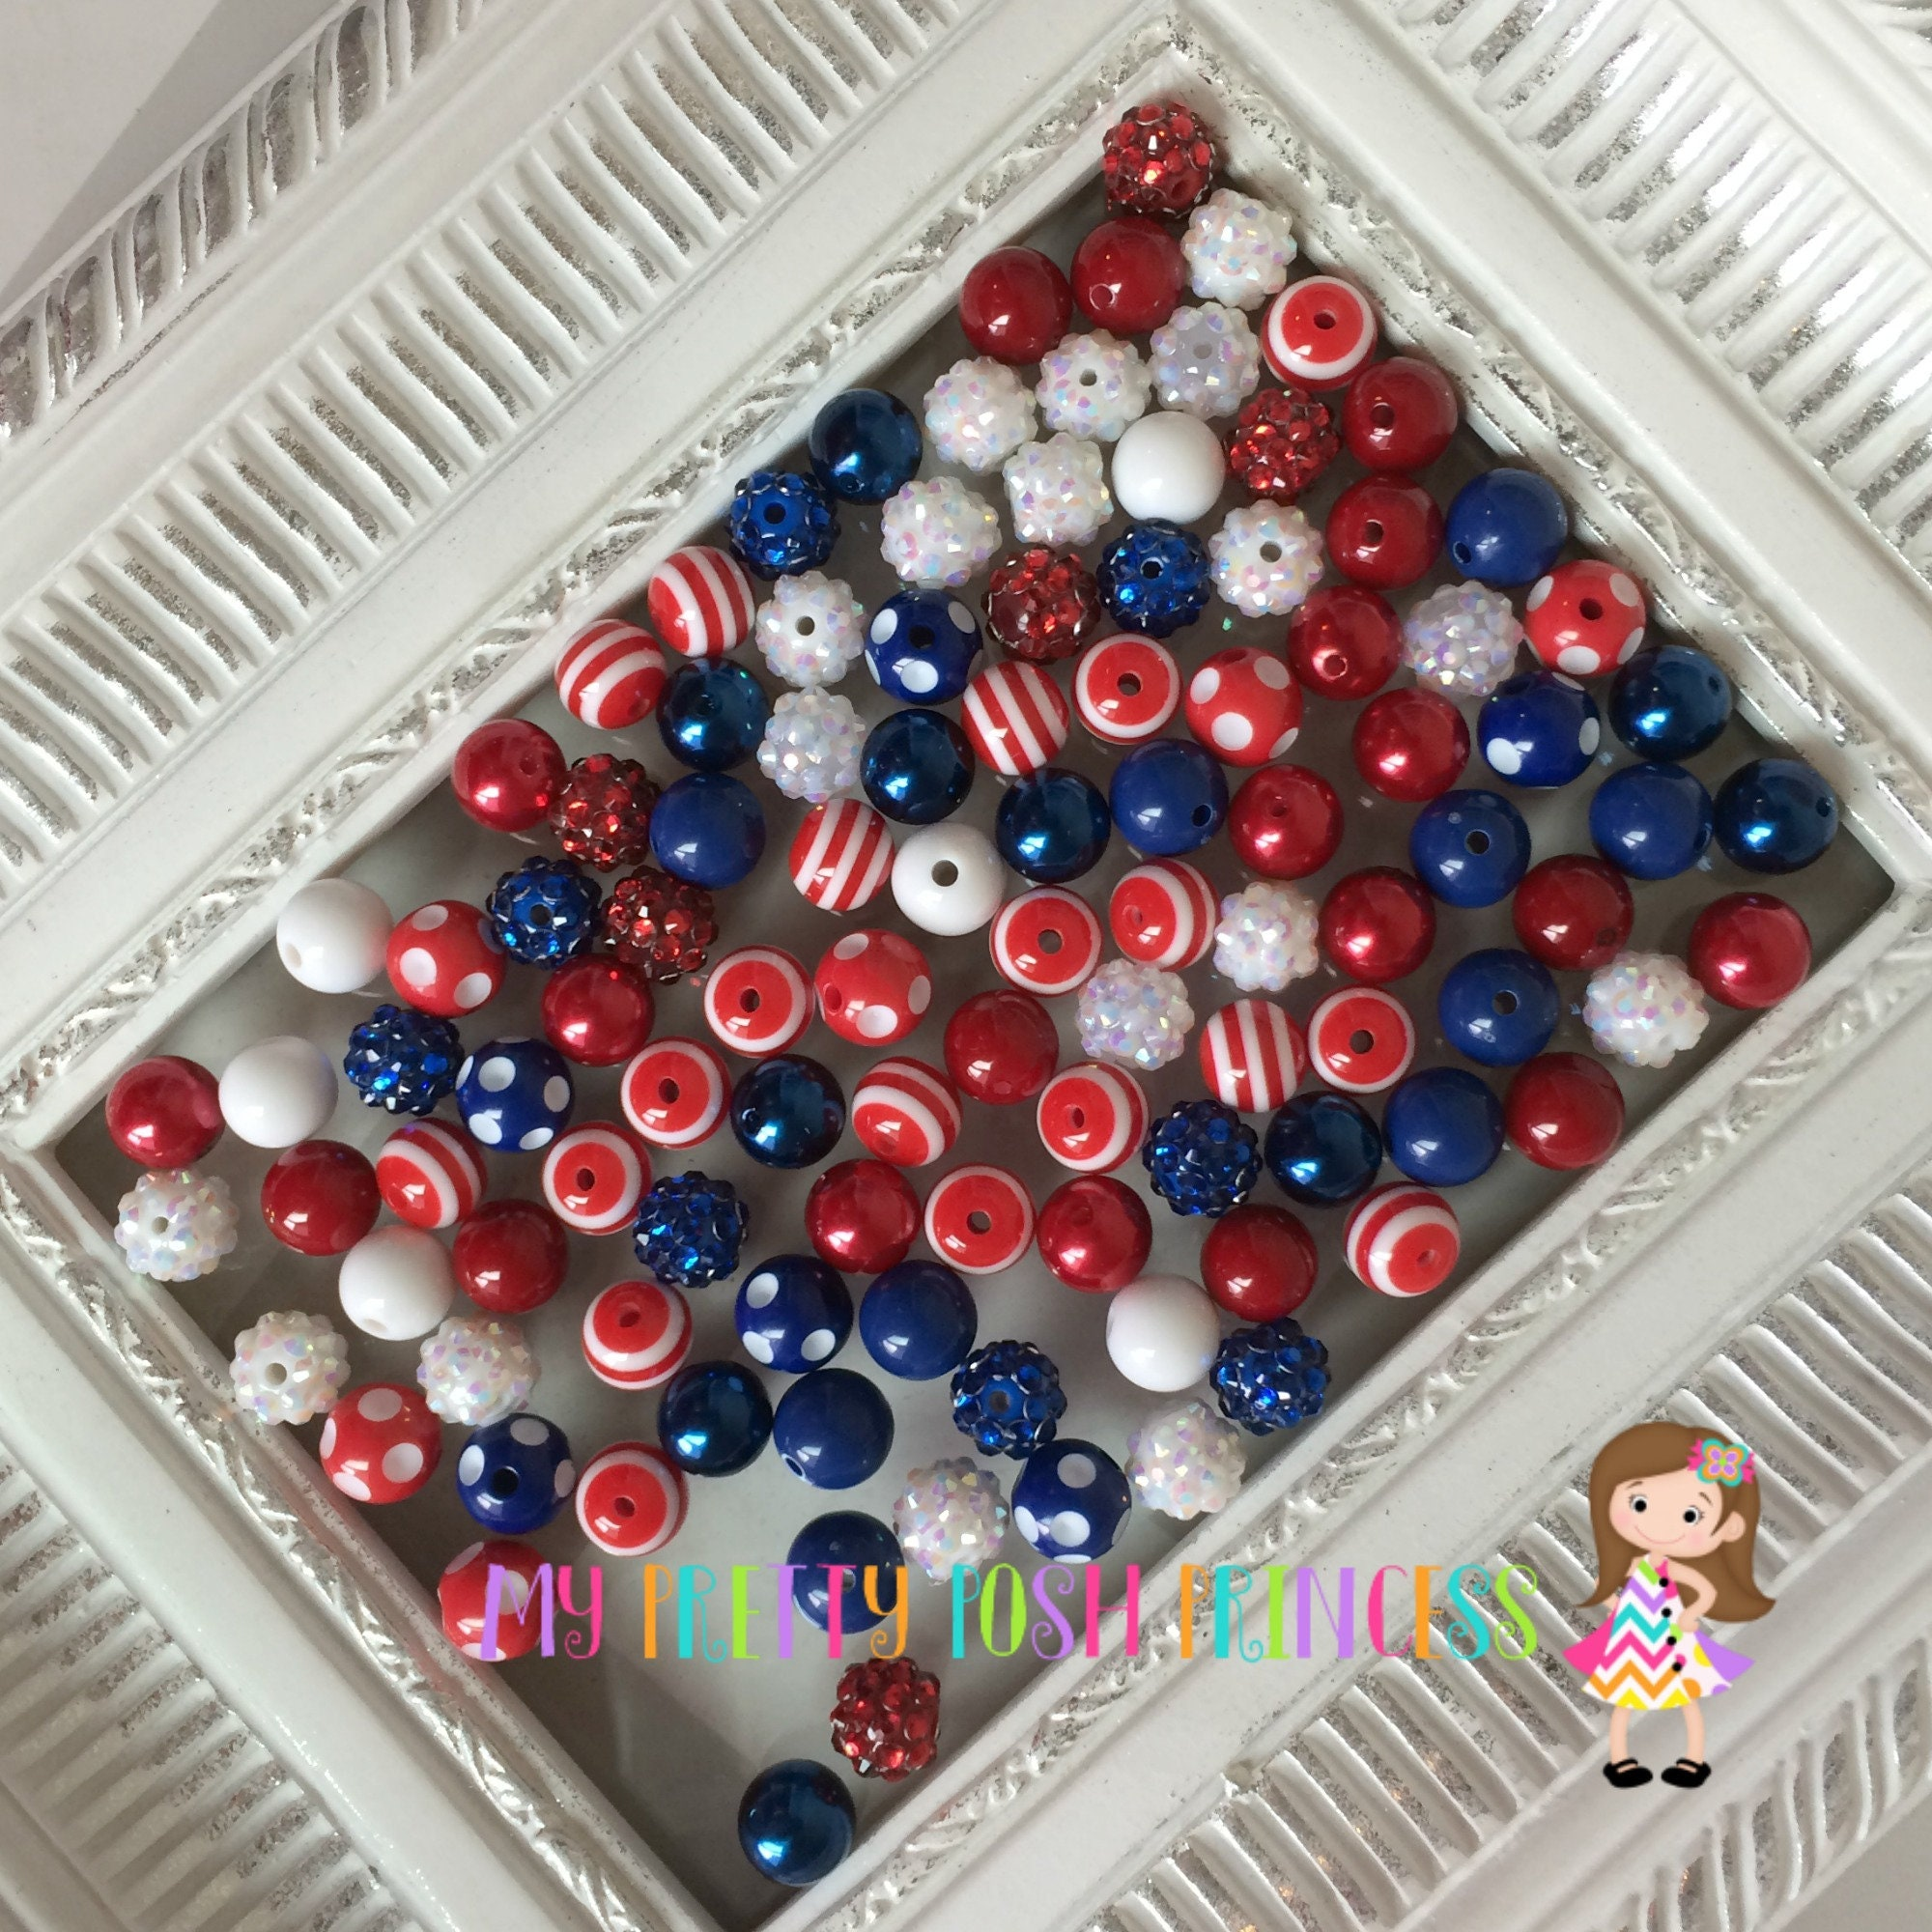 with silk undertaken sale thread earing order for connect beads bulk noticeboard number